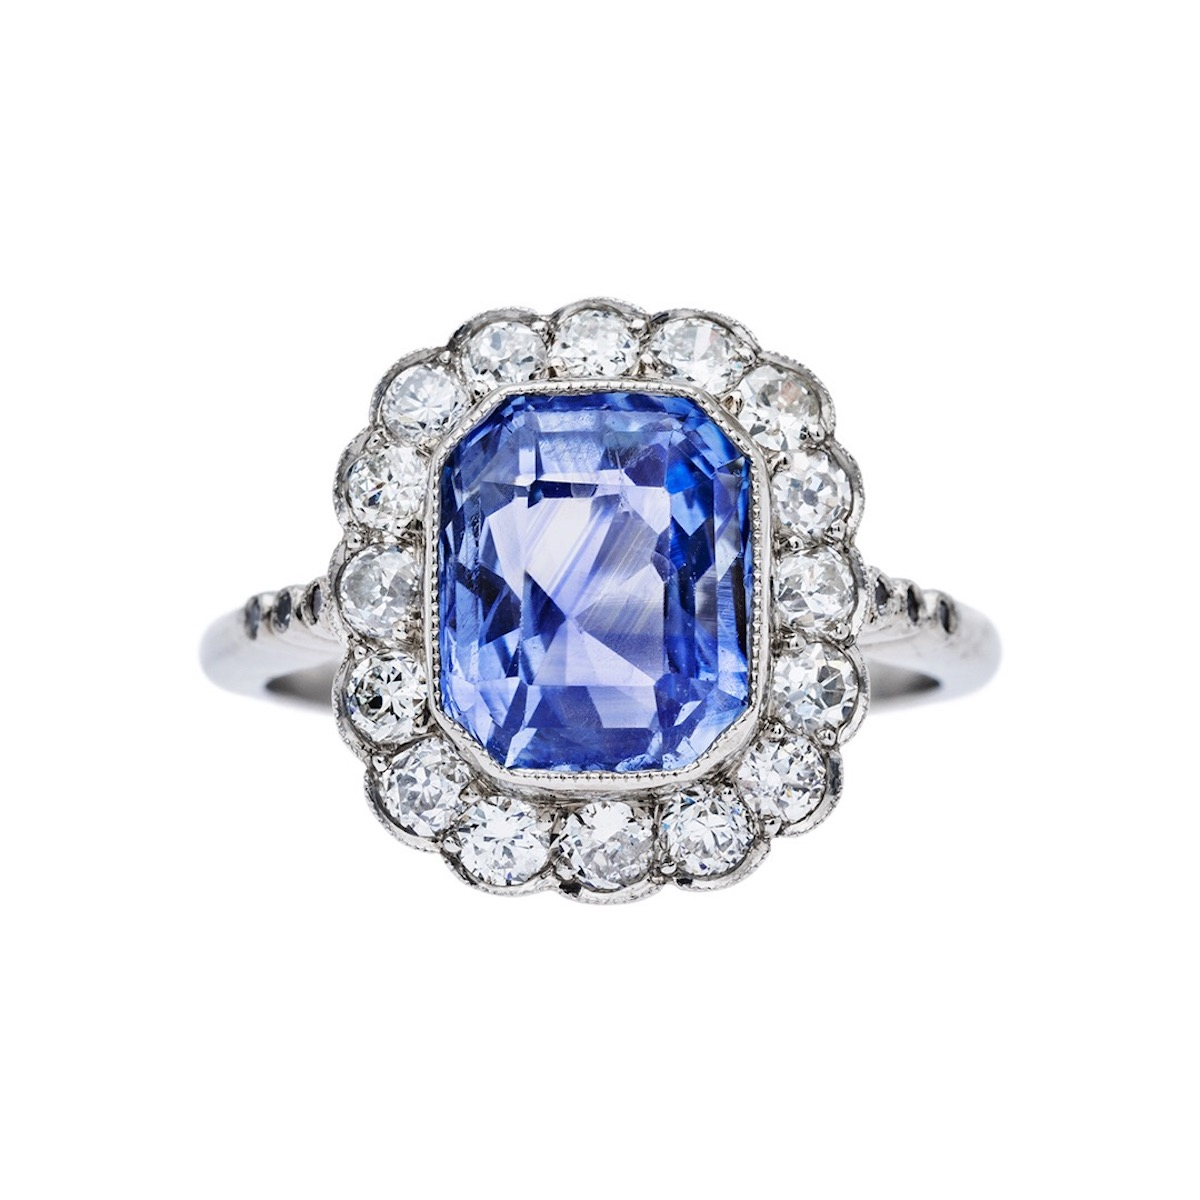 art deco sapphire ring from Trumpet & Horn